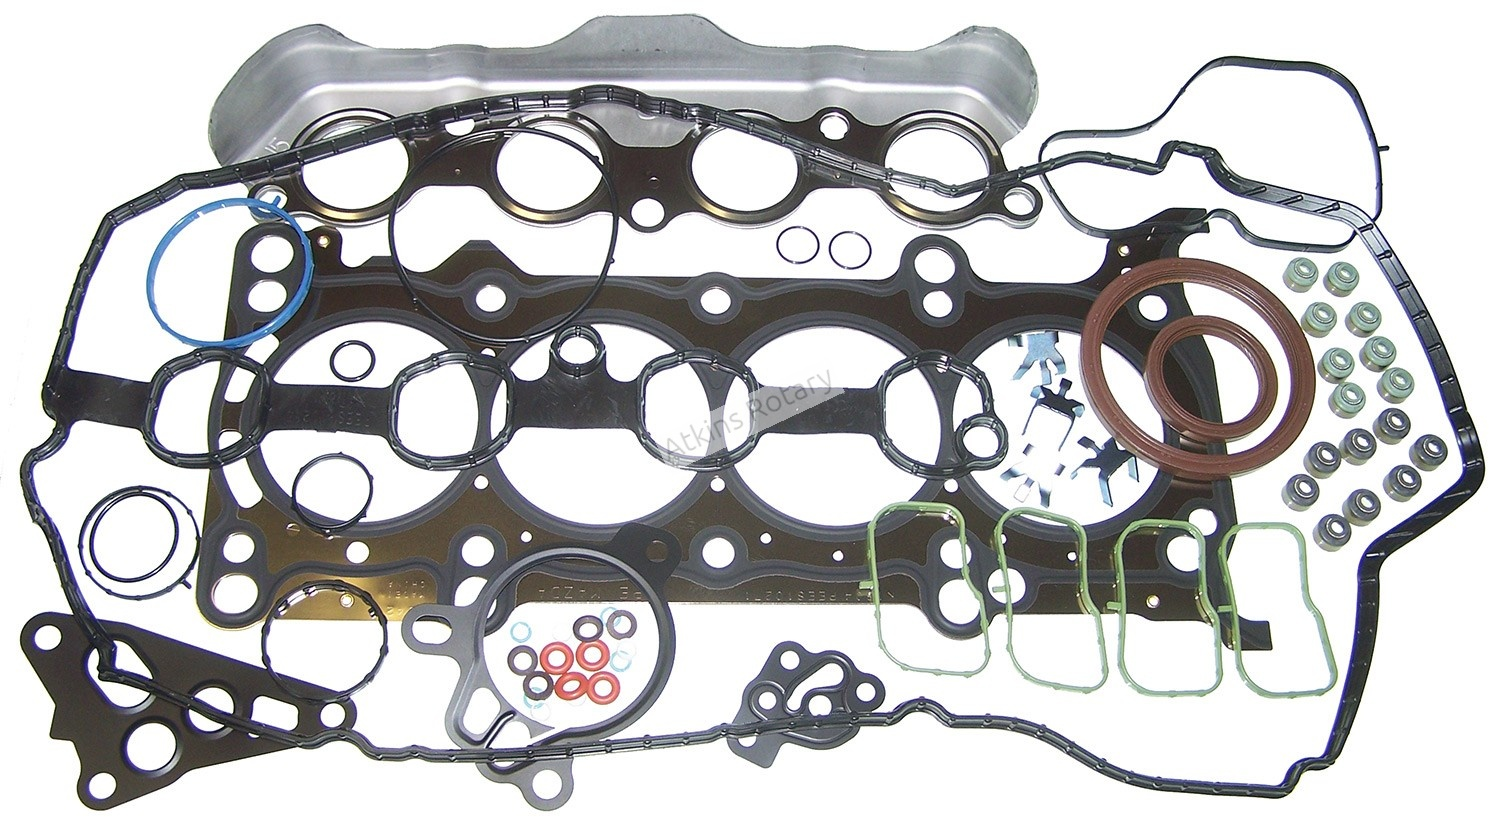 16-18 Mx5 Full Engine Gasket Kit (8LN8-10-271)